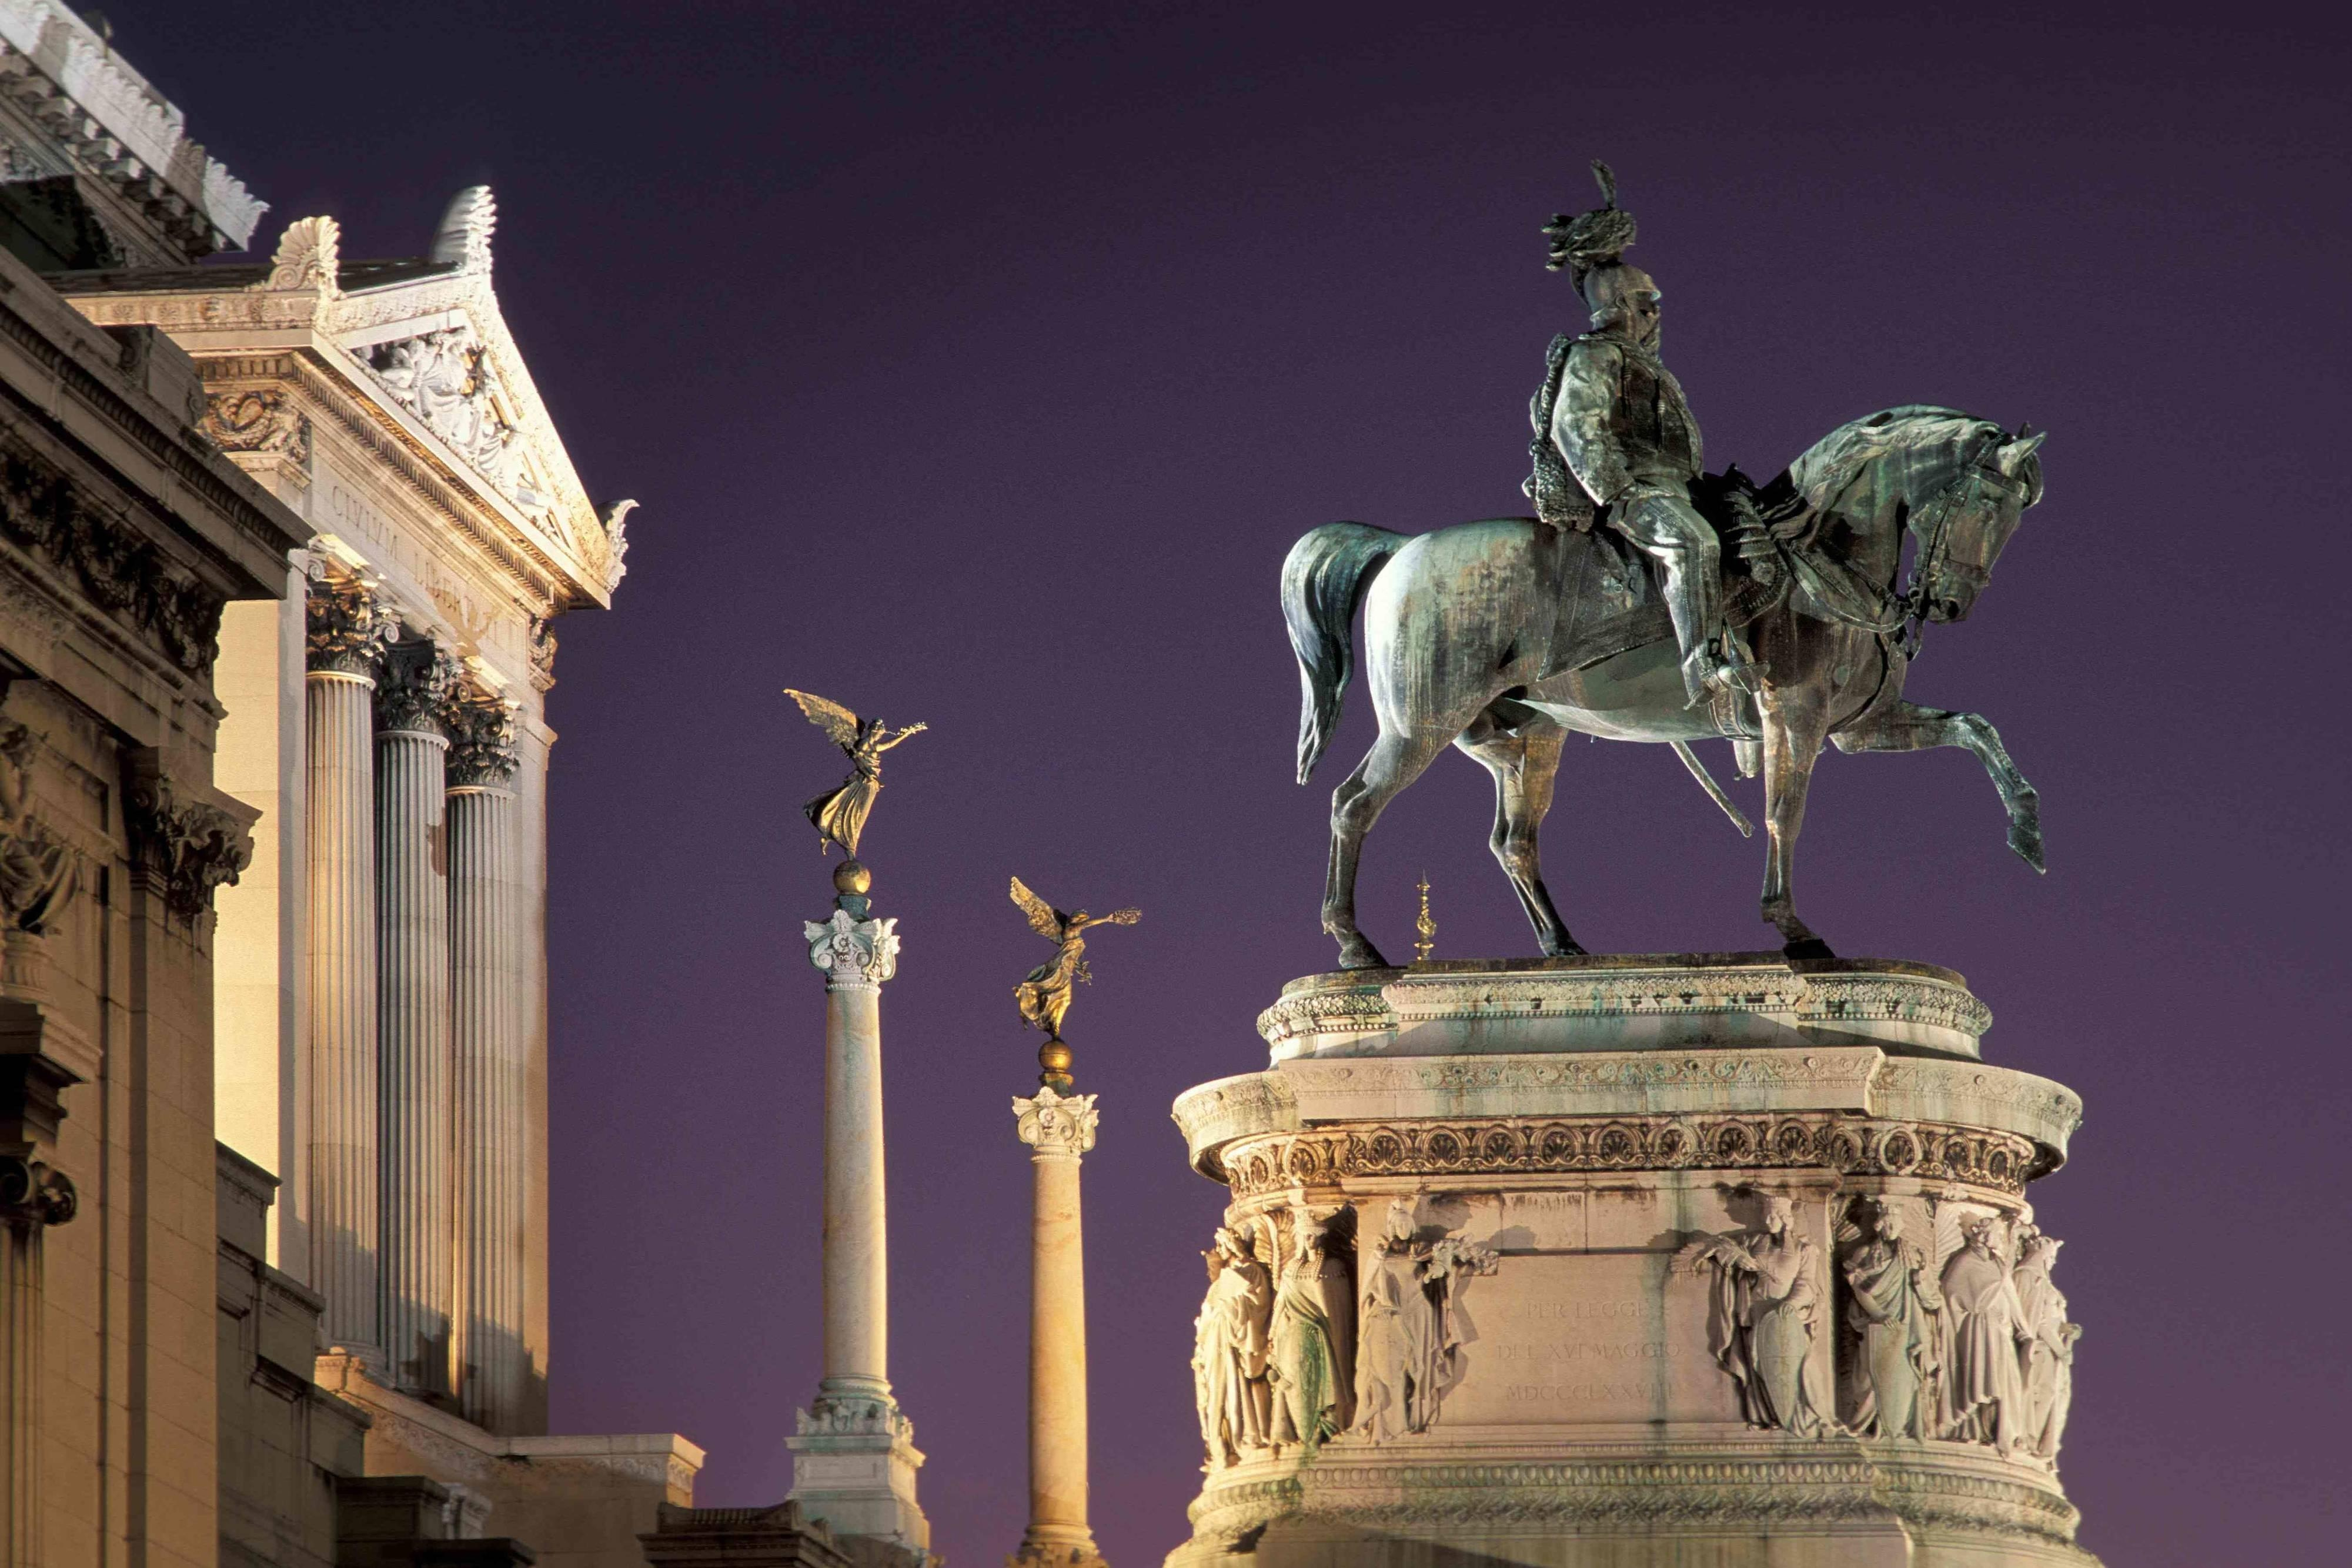 Piazza Venezia and the Vittoriano in Rome